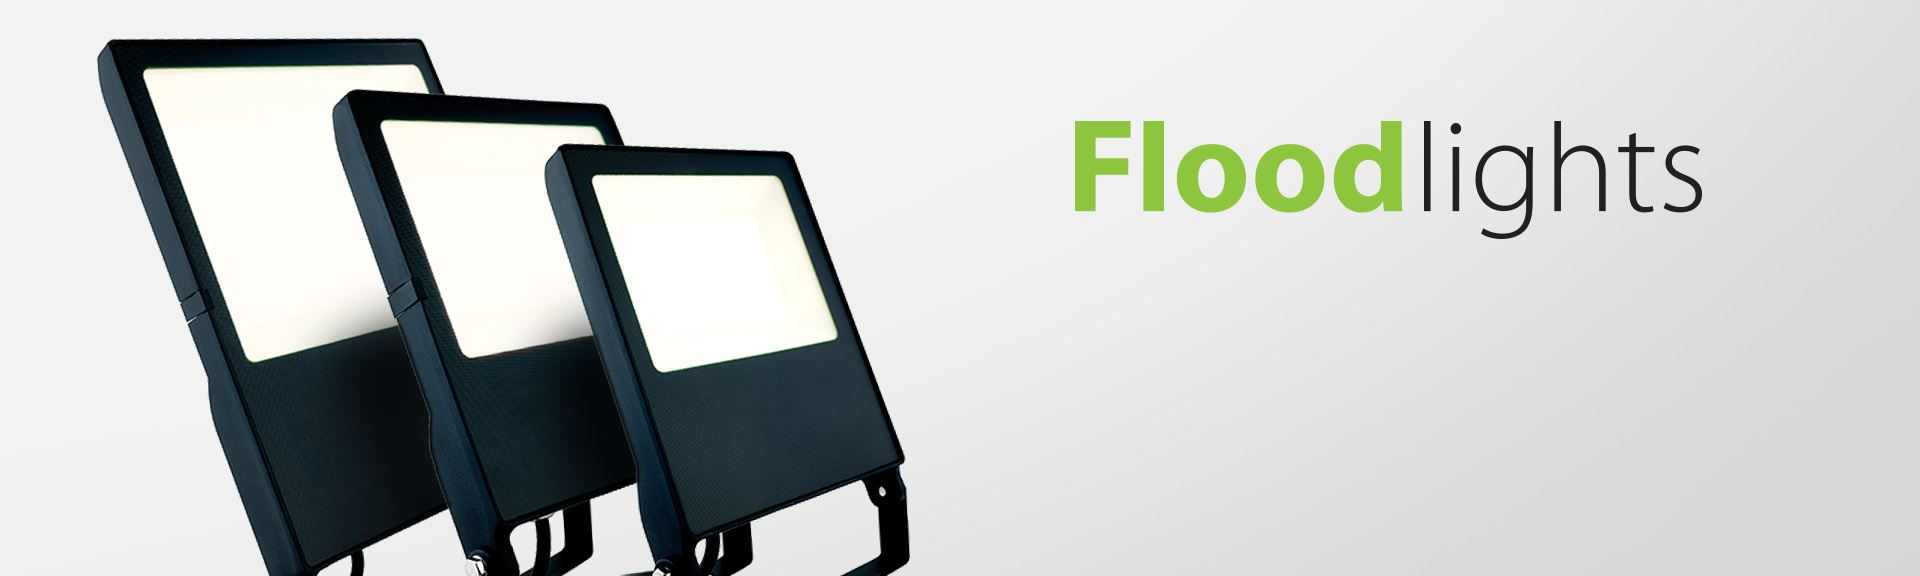 LED Floodlights by Vision Lighting for commercial lighting applications